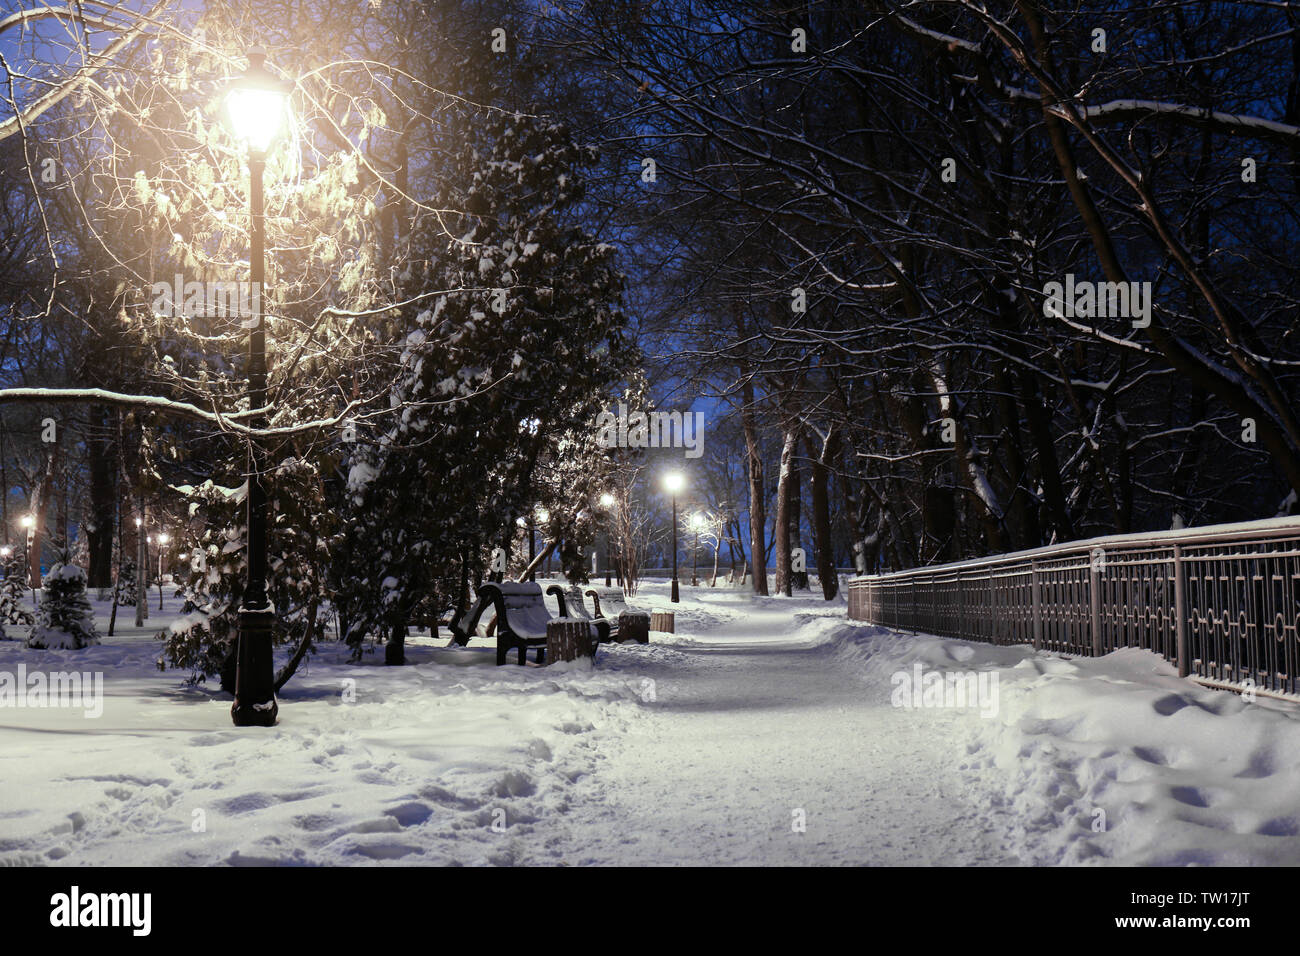 Beautiful winter landscape with snowy alley in evening - Stock Image